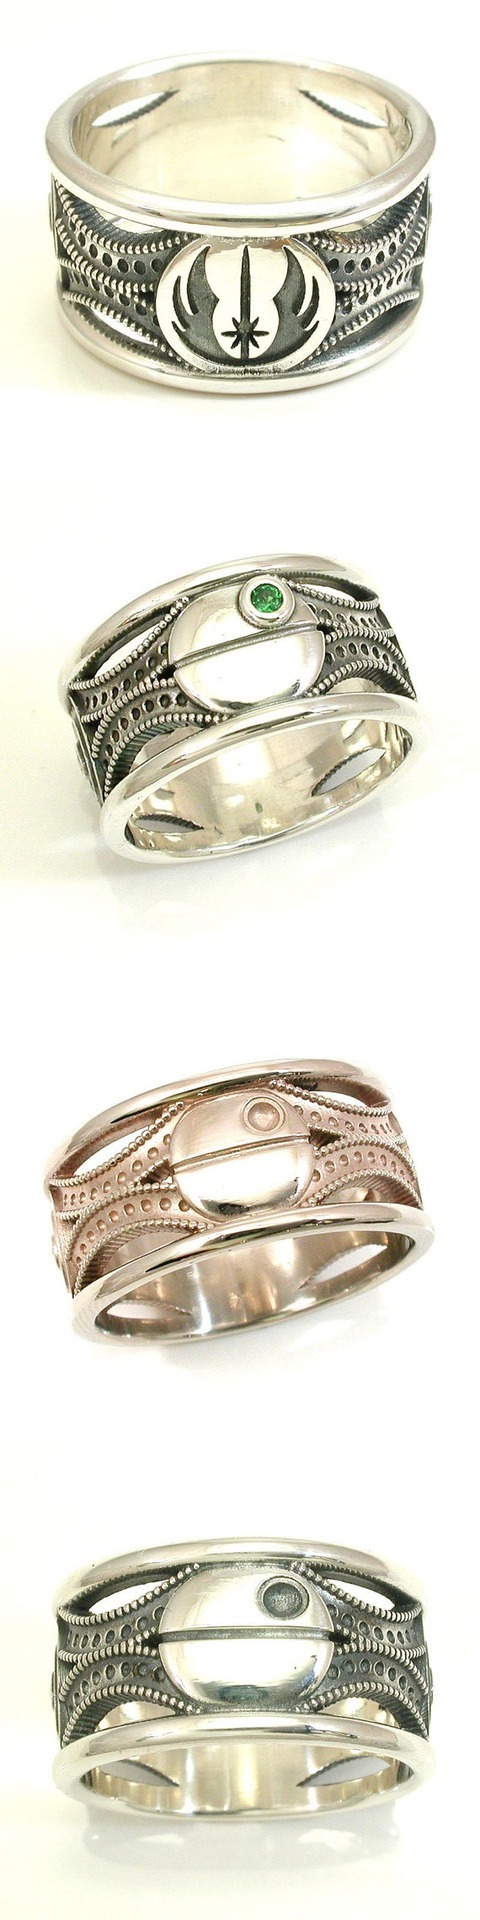 star wars wedding bands Star Wars wedding engagement rings Did Fadi ever find his